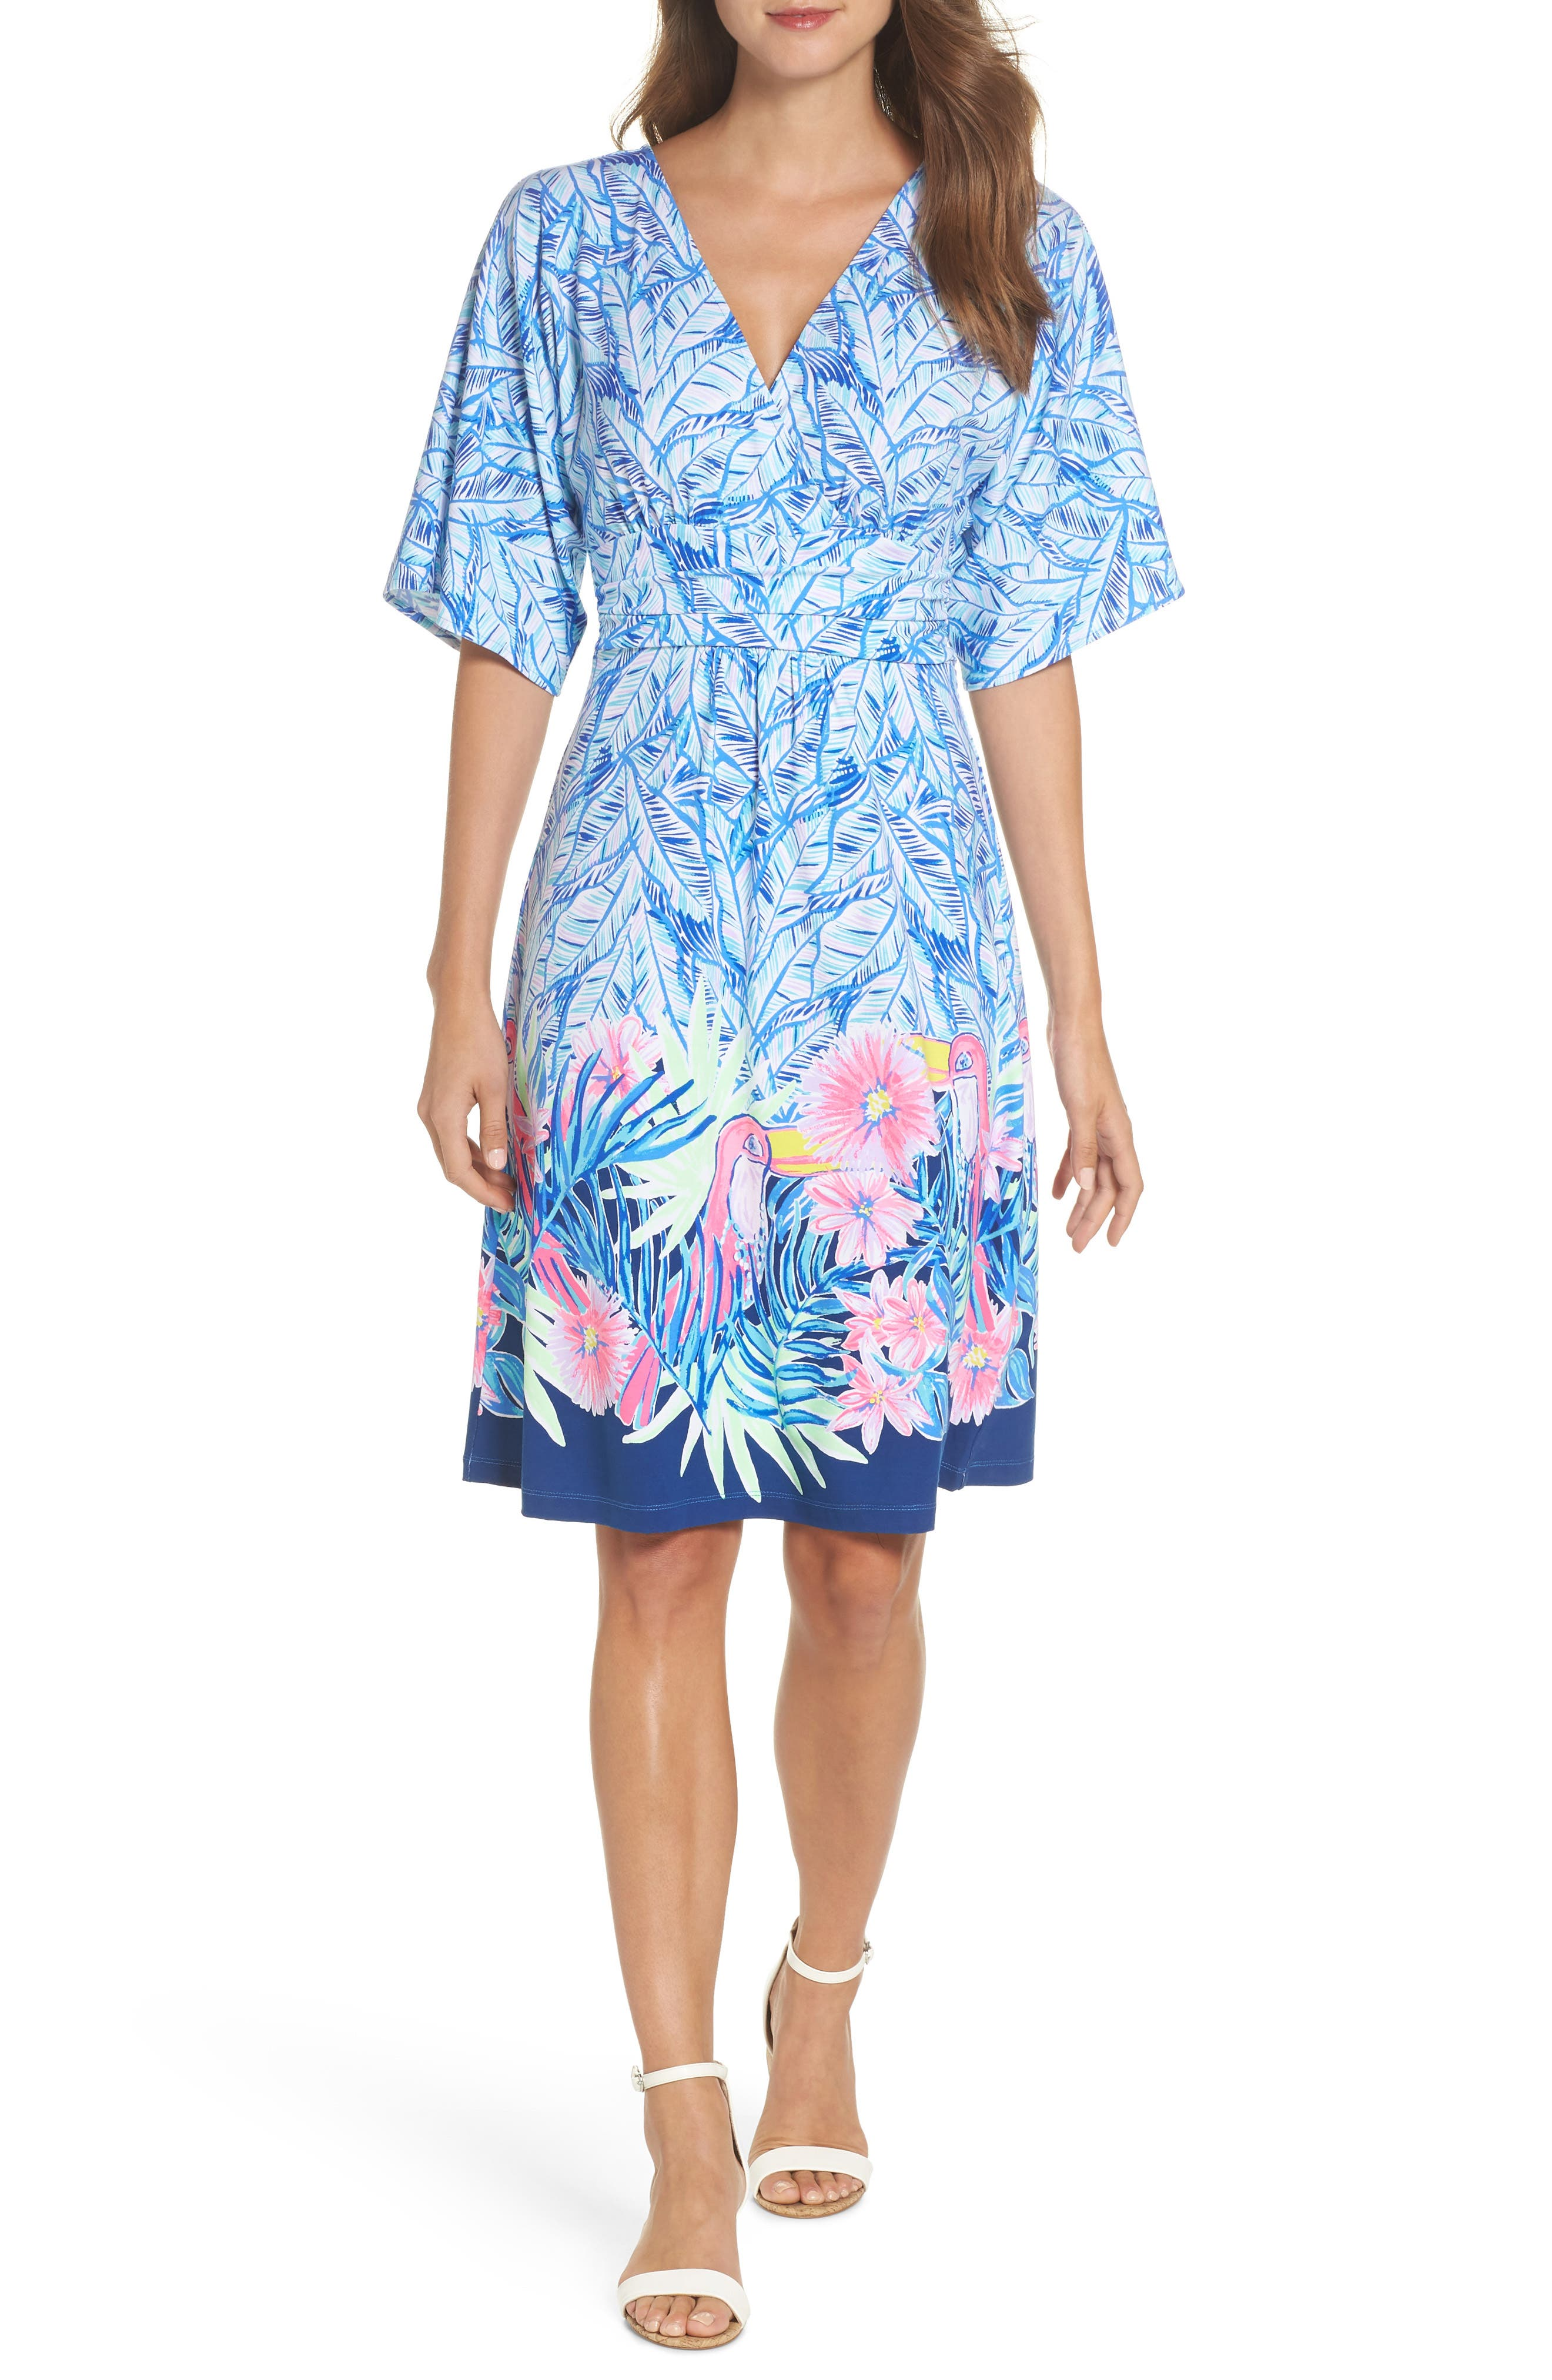 Parigi Print Dress,                             Alternate thumbnail 5, color,                             420